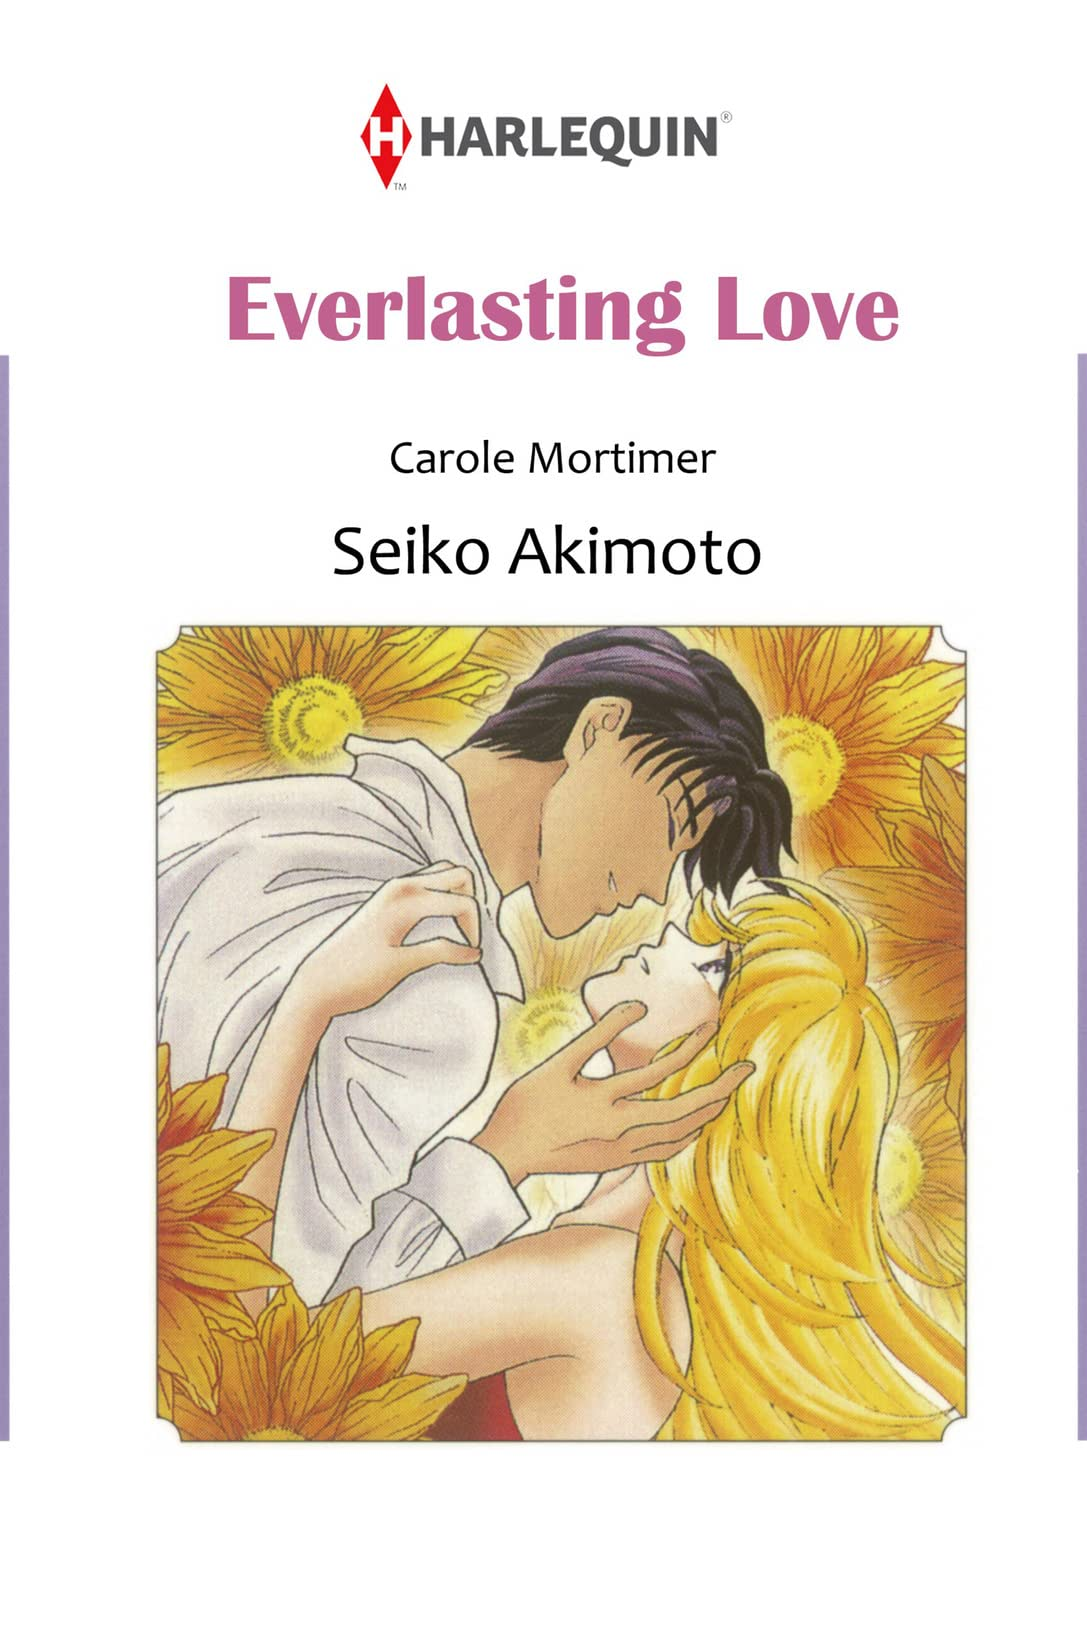 Everlasting Love (Harlequin)